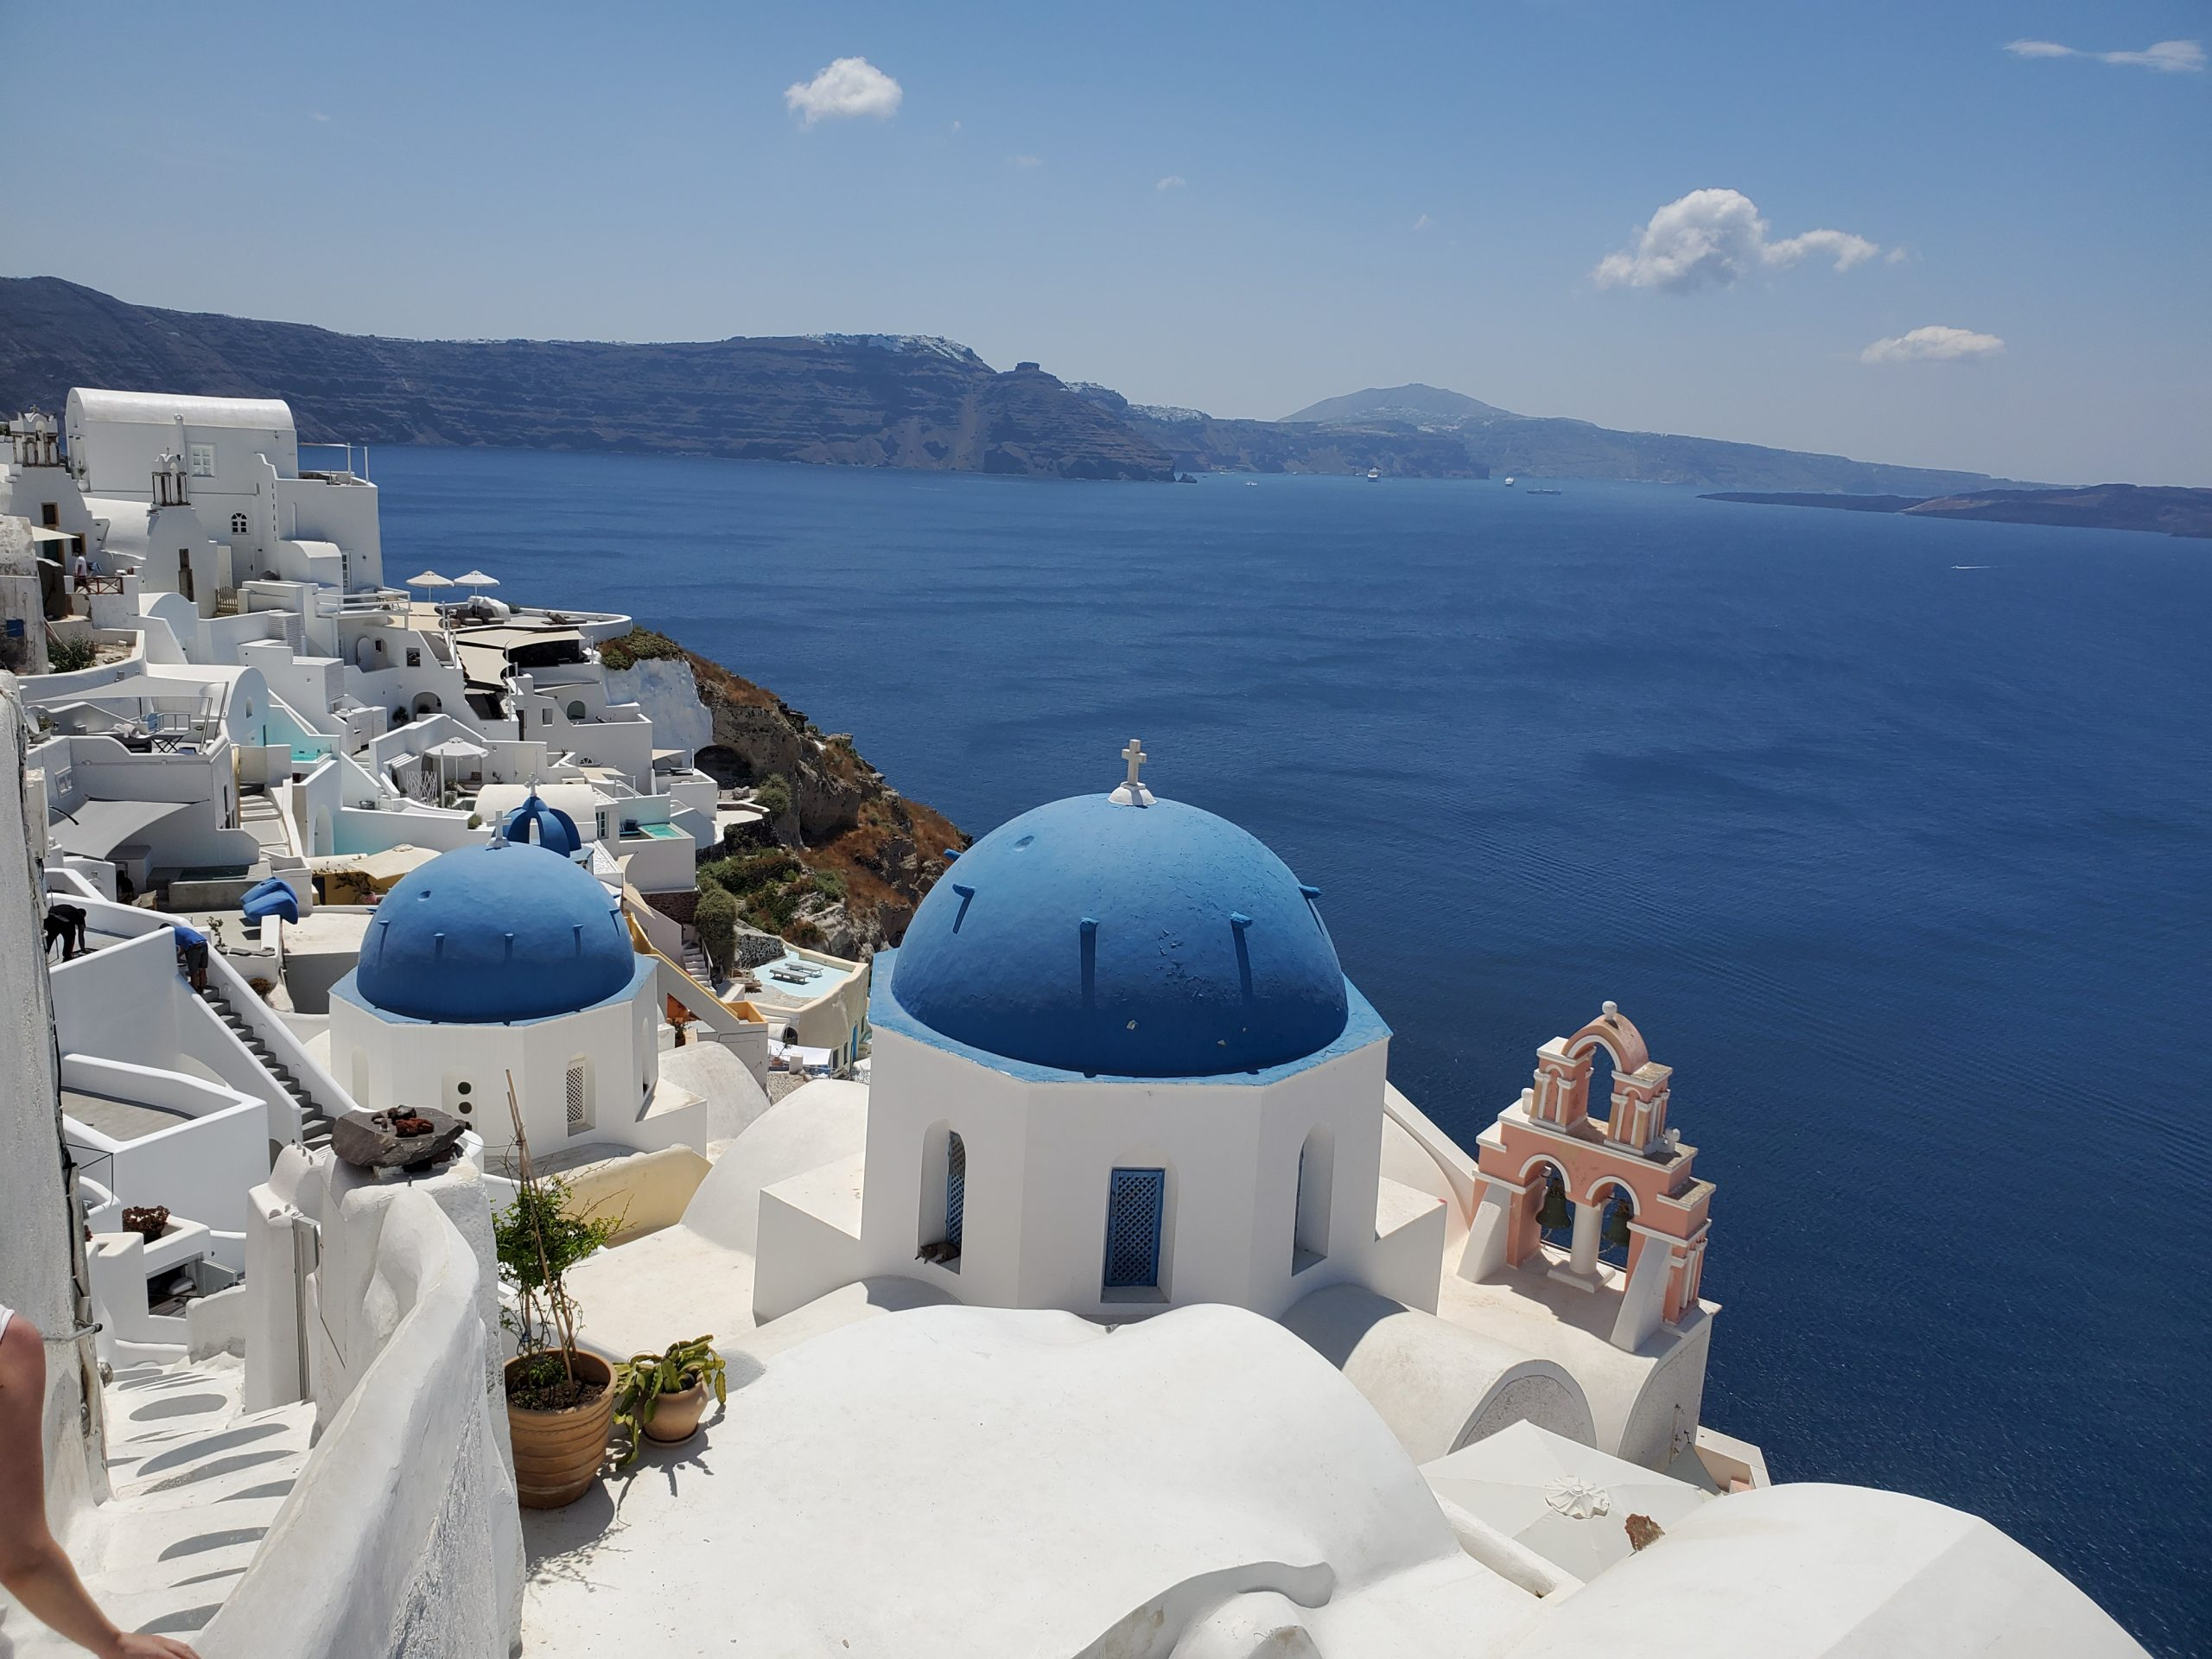 Cernys' Journeys: Santorini, Greece